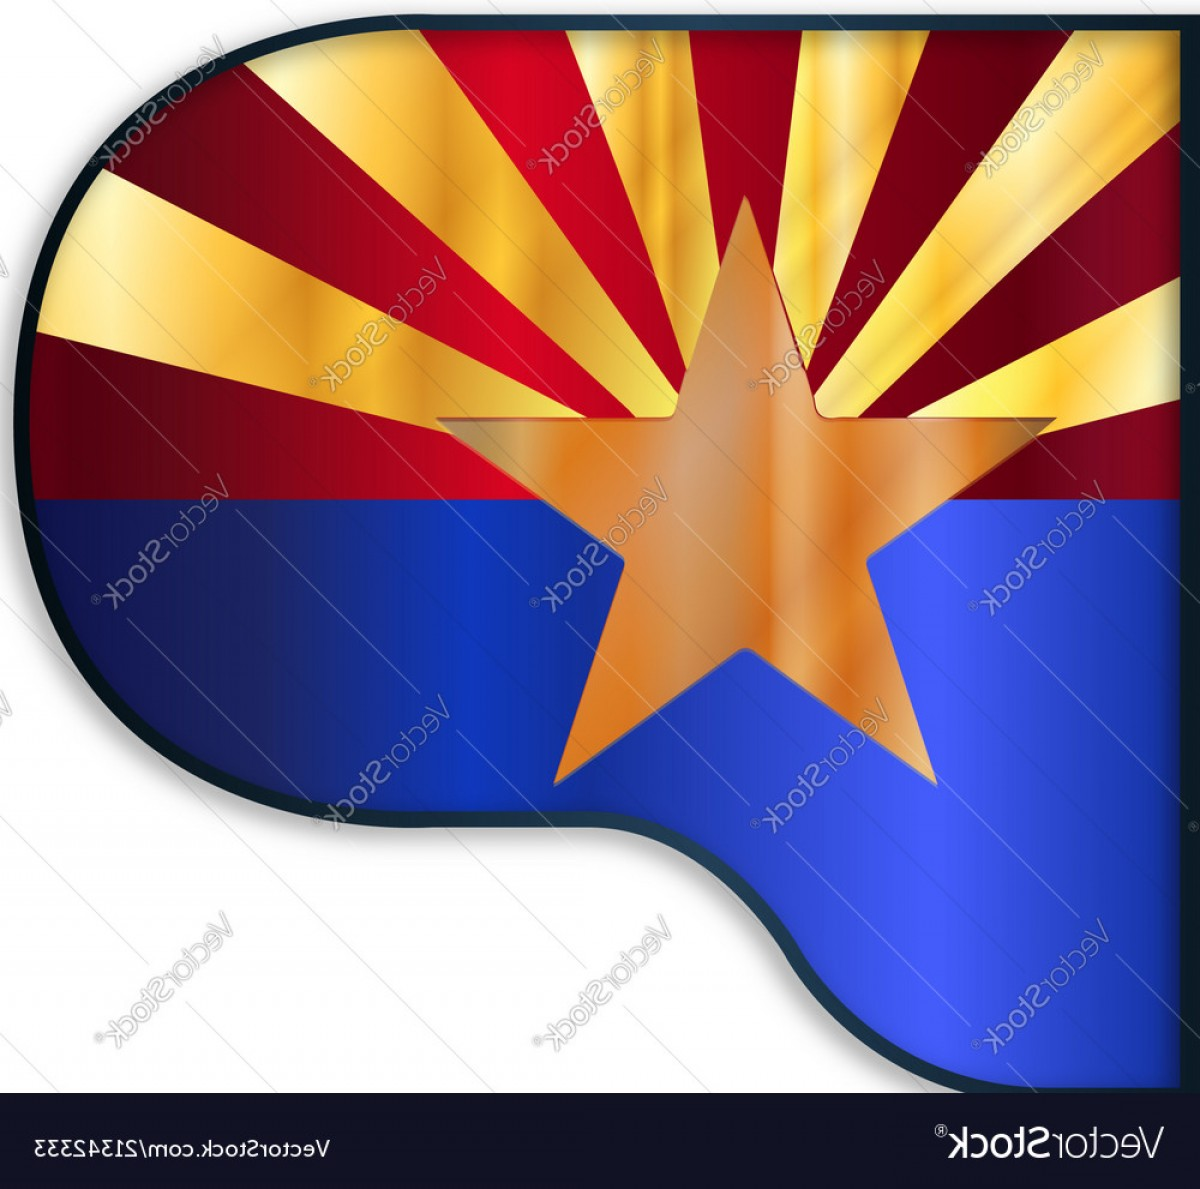 Arizona Flag Vector: Grand Piano Arizona Flag Vector